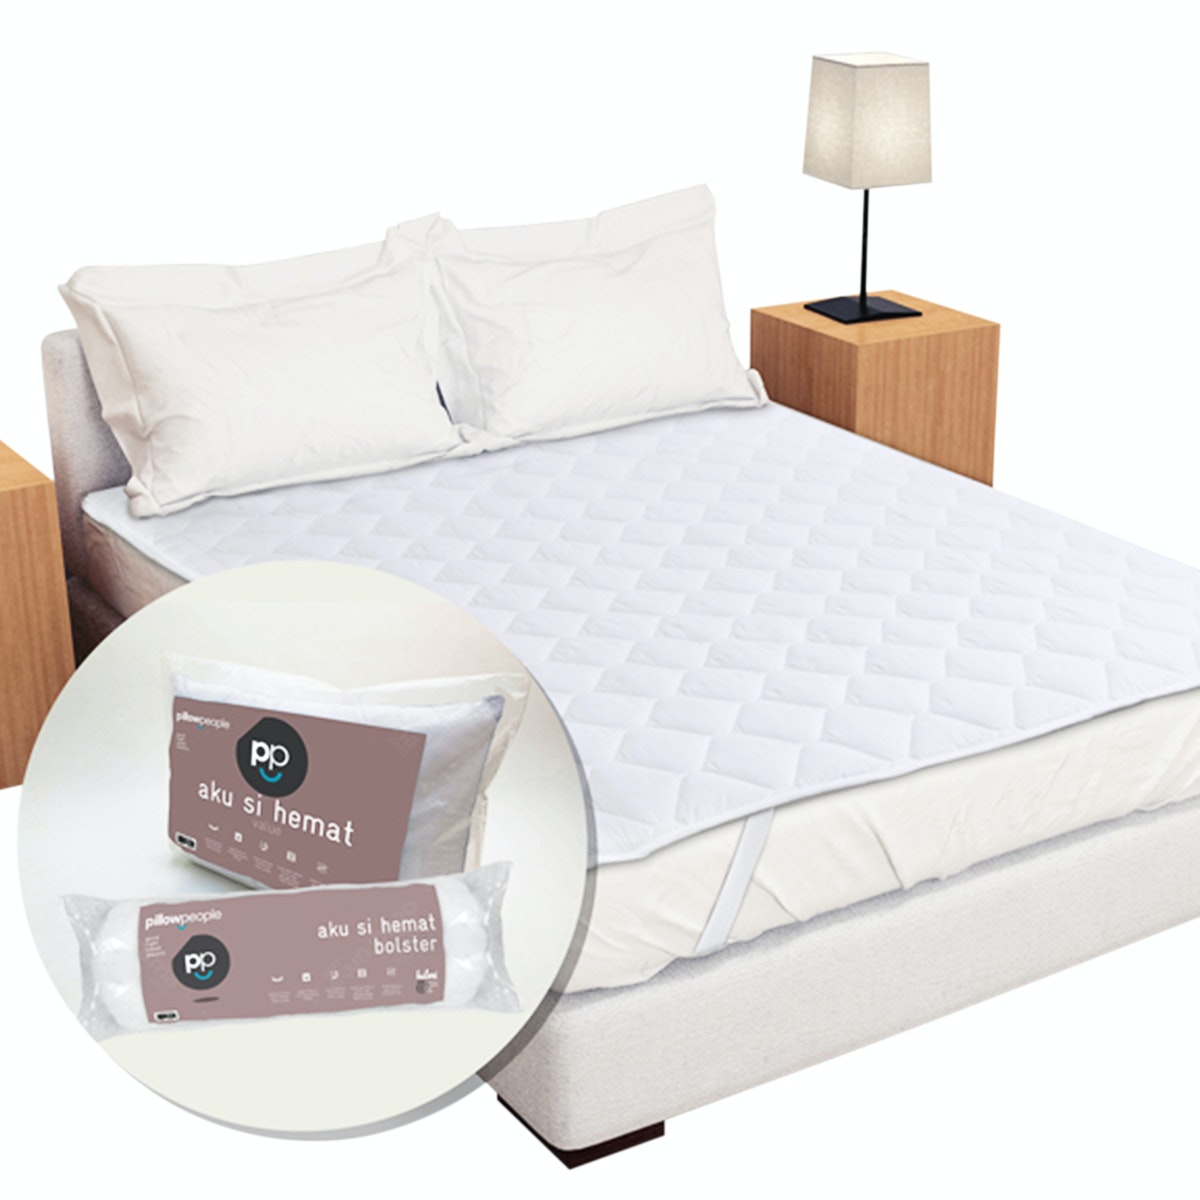 Pillow People Paket Protector 3 in 1 - Matras Protector 180 + Pillow Protector + Bolster Protector